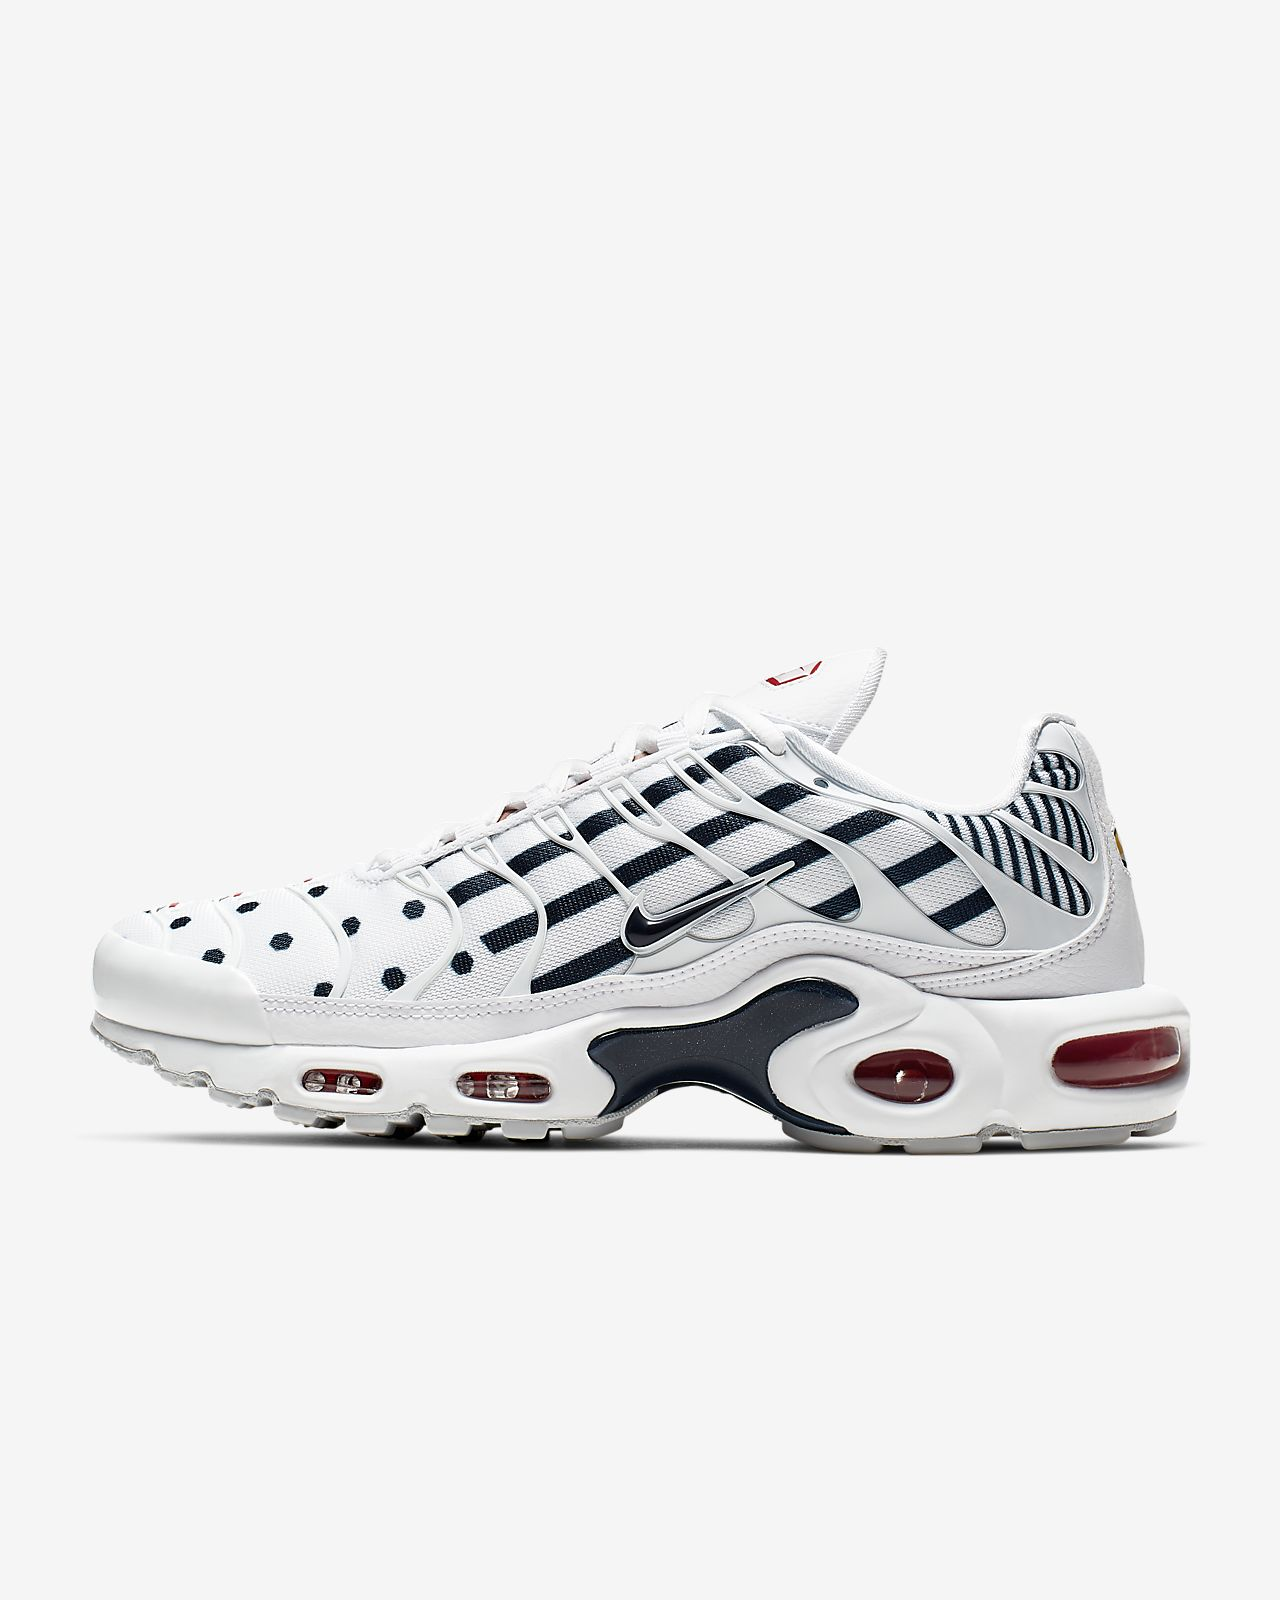 Nike Air Max Plus TN Unité Totale Women's Shoe